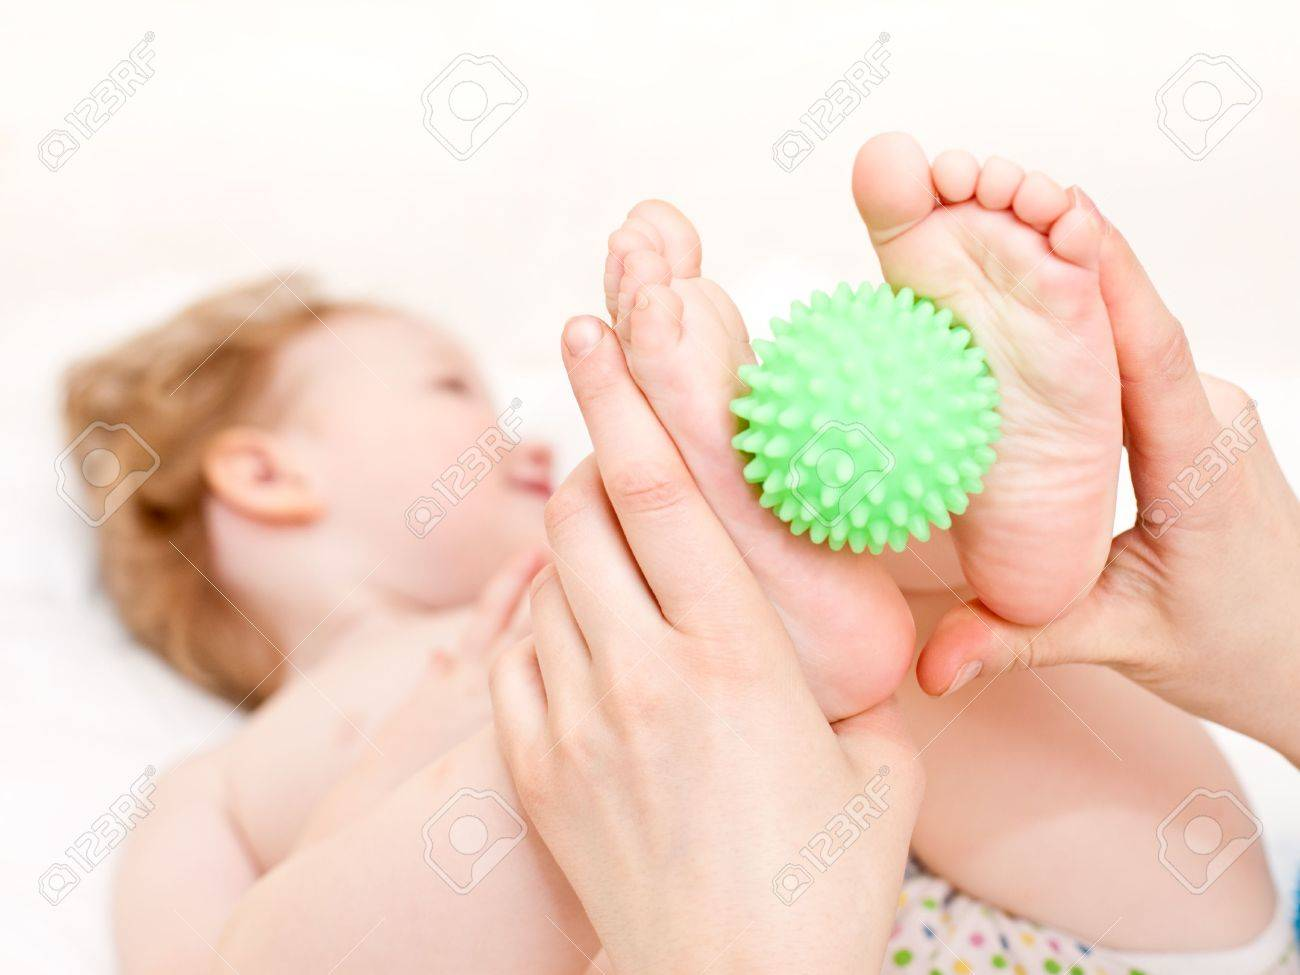 Masseur massaging child's feet with rubber device, shallow focus Stock Photo - 6694616